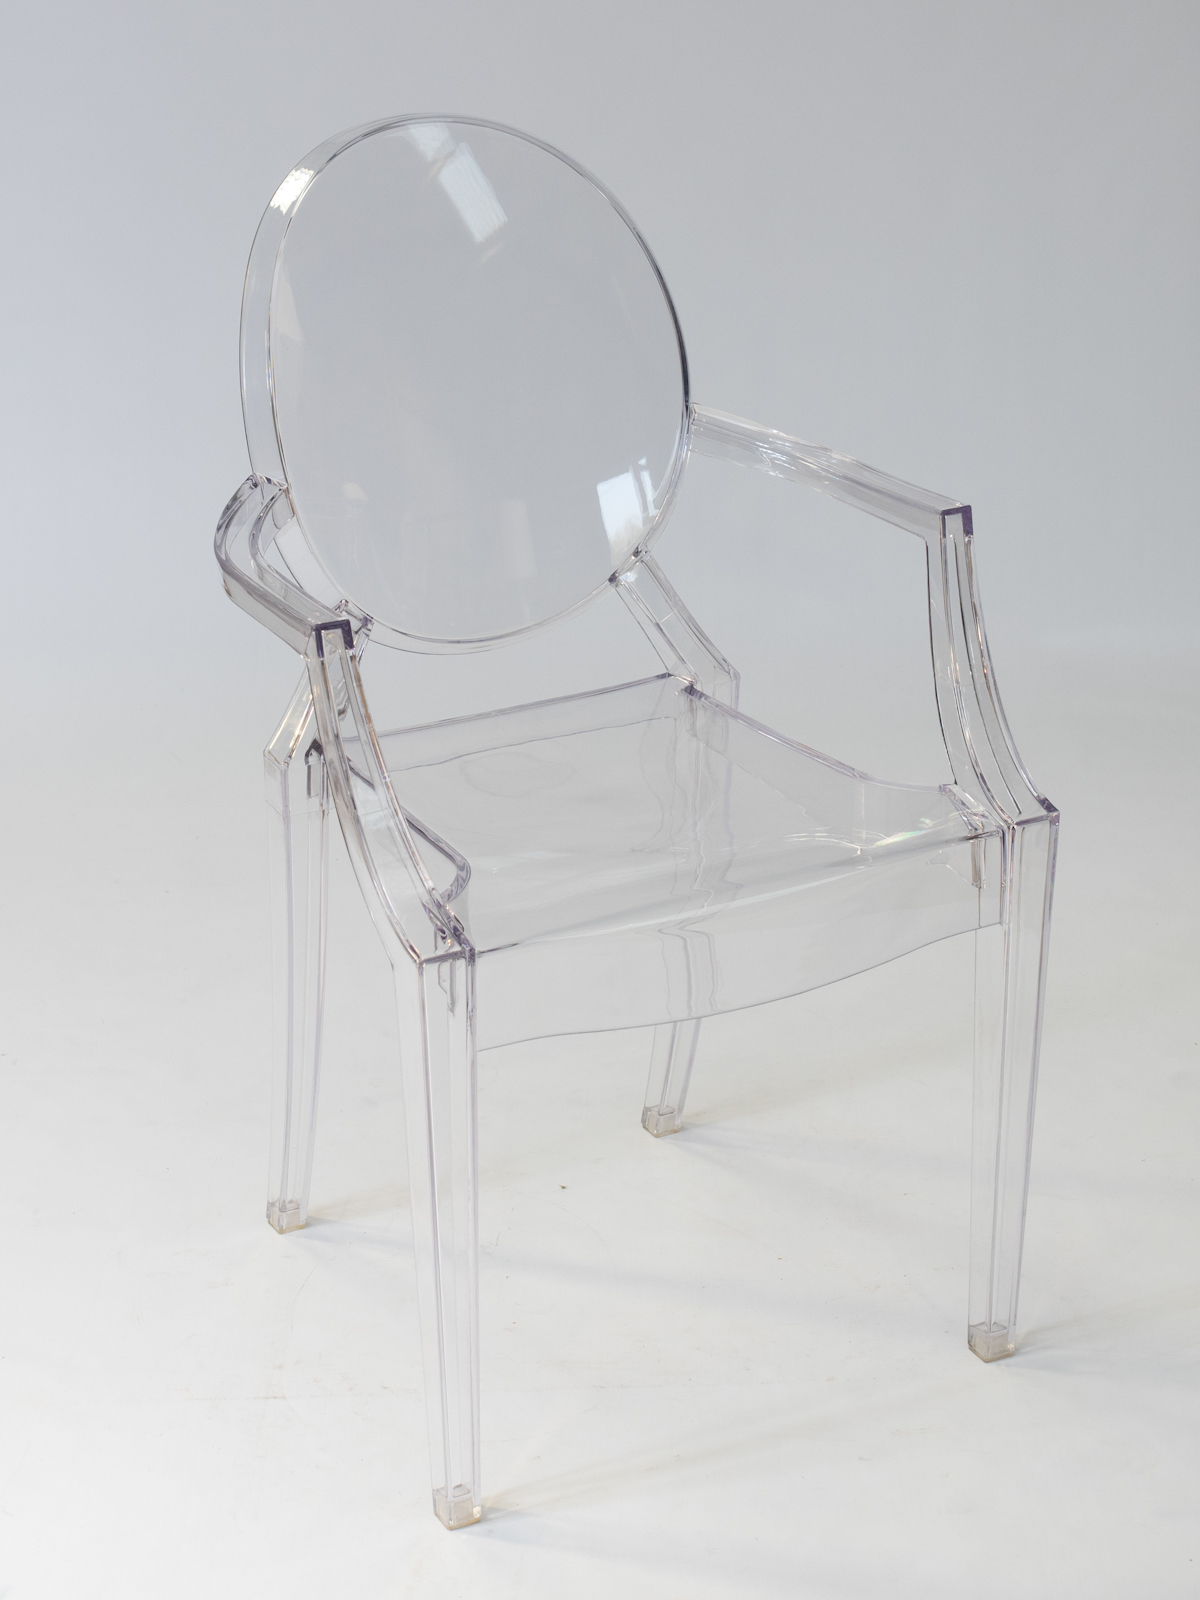 clear ghost chair hire 25 00 up to 5 days hire add to cart add to